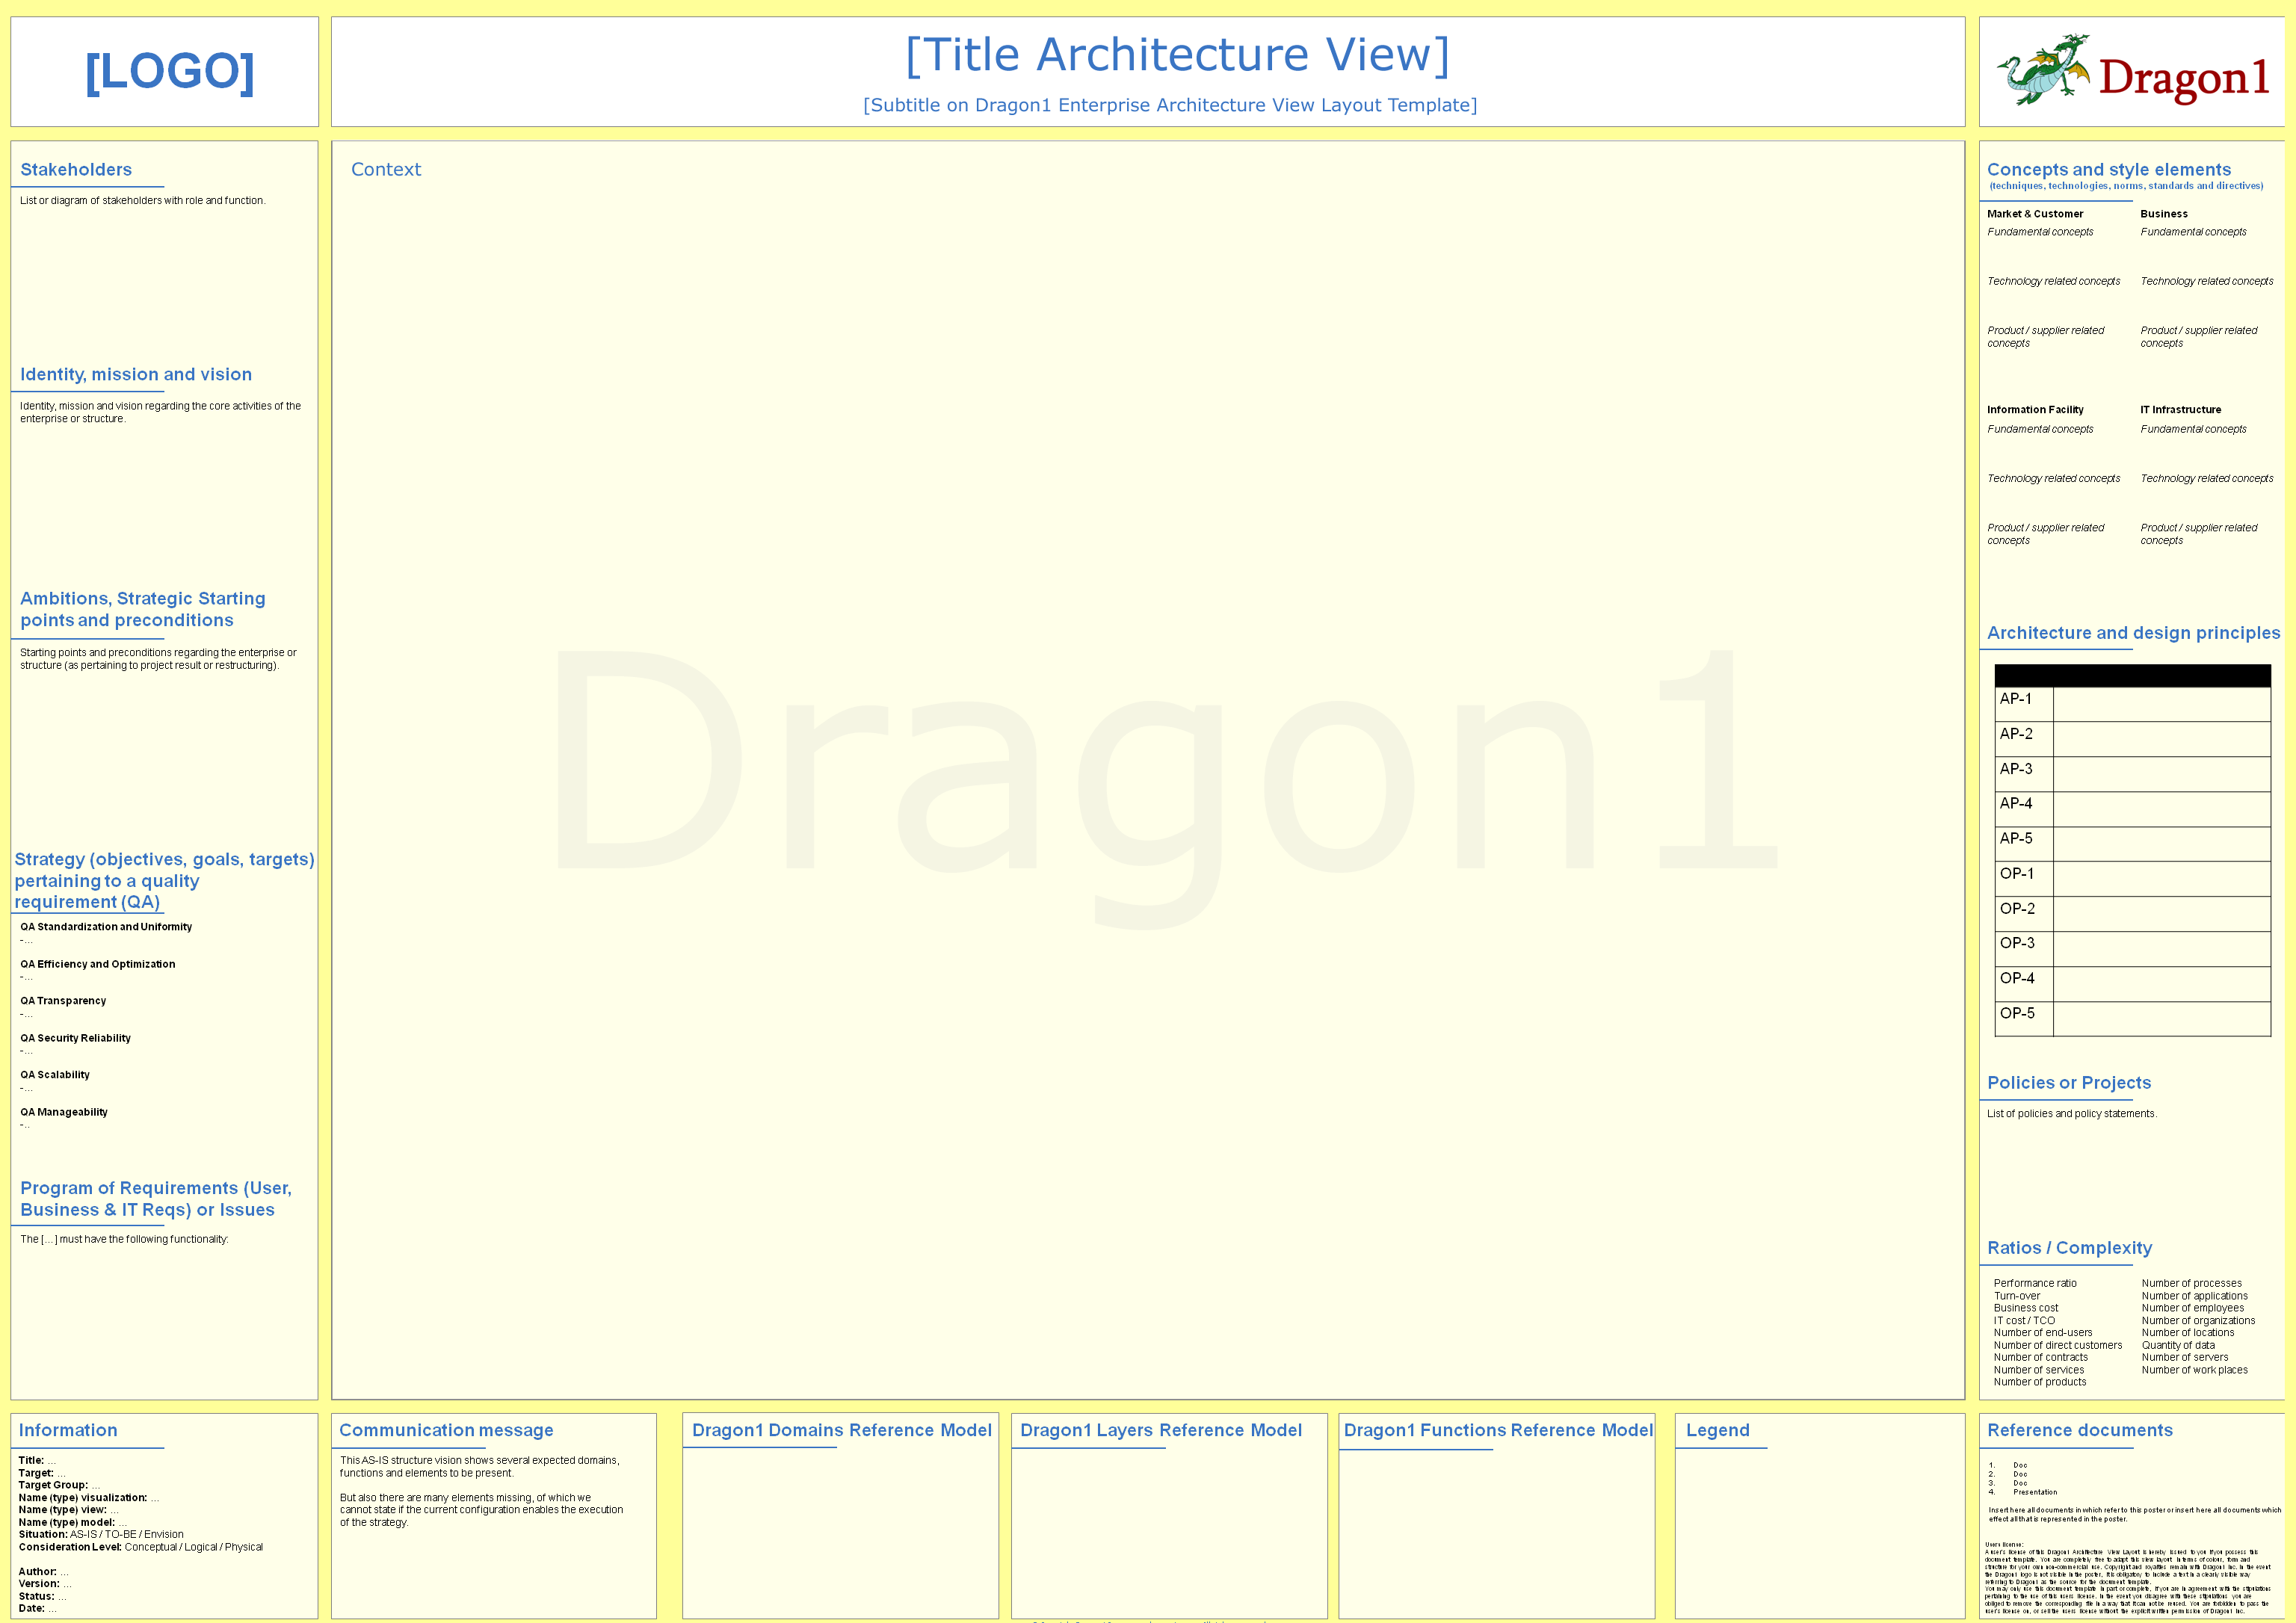 Dragon1 Enterprise Architectuurcanvas